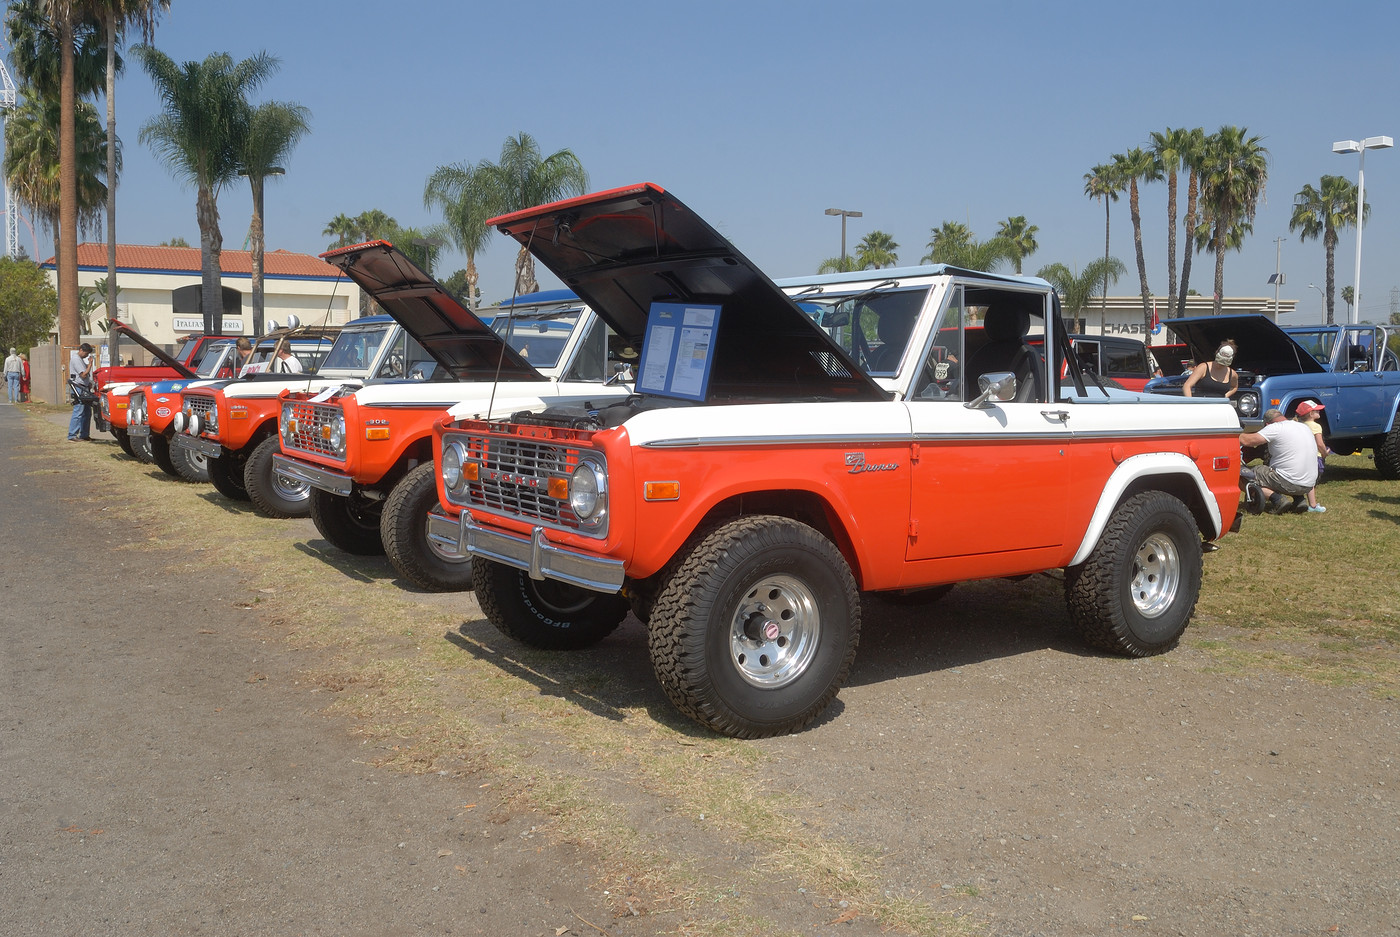 1971 Ford Bronco owned by Ross and Geoffrey Hobday DSC 4821